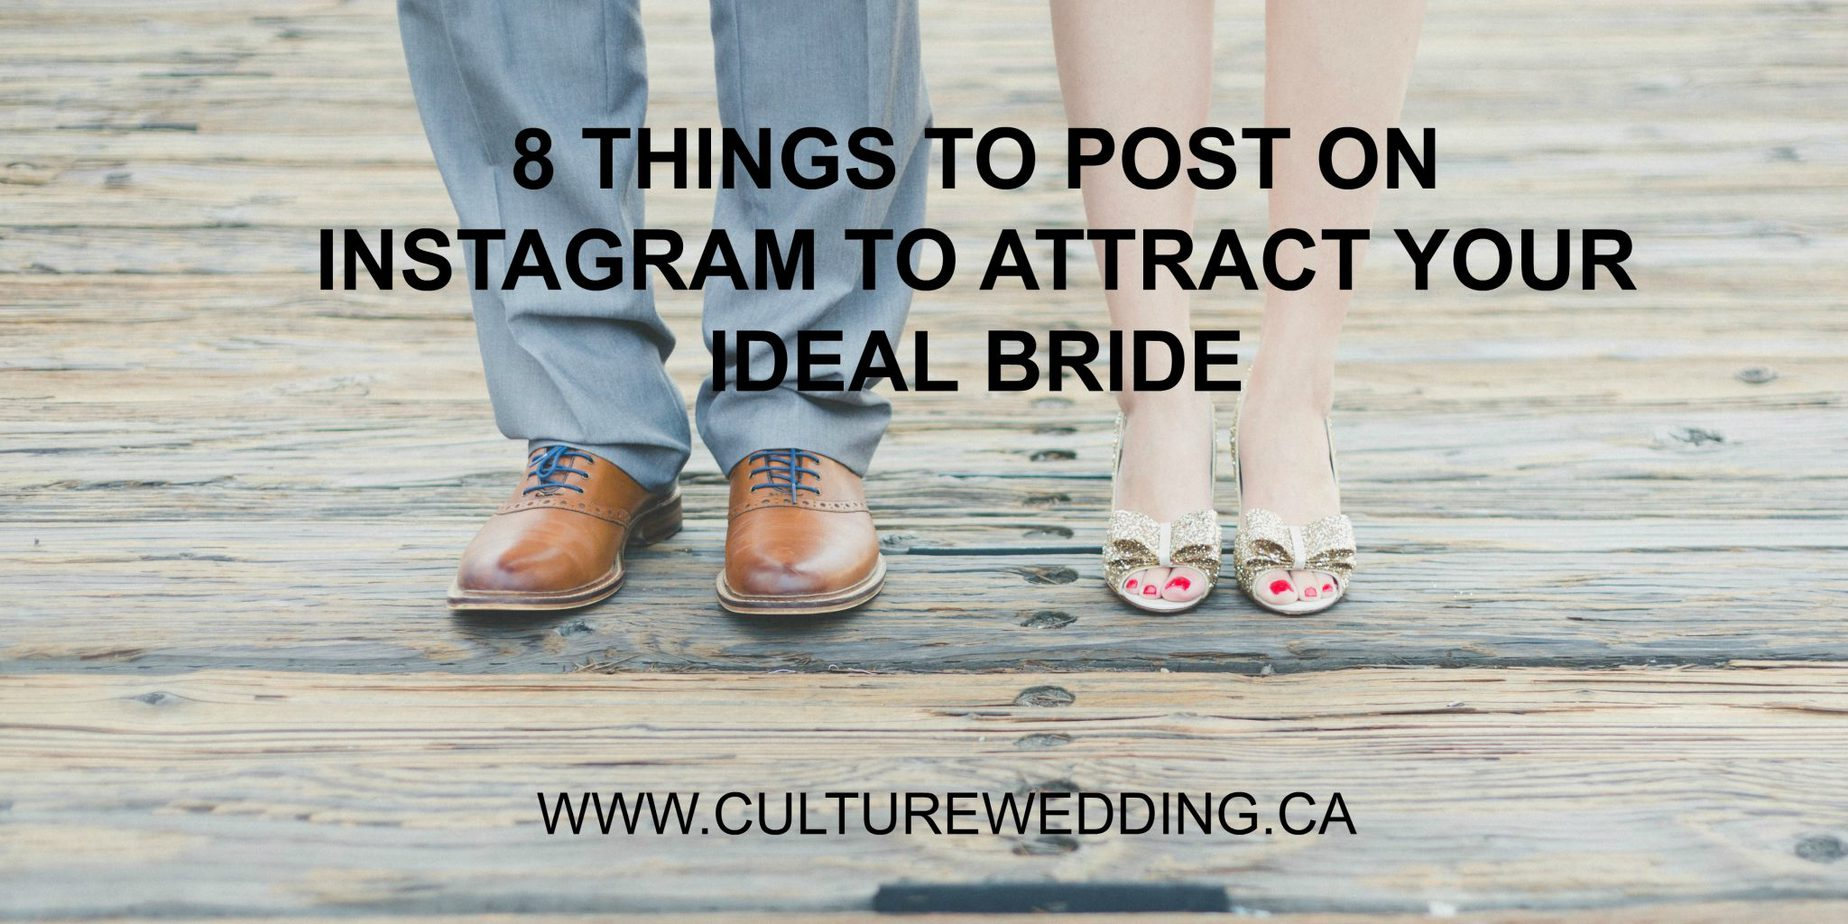 8 THINGS TO POST ON Instagram